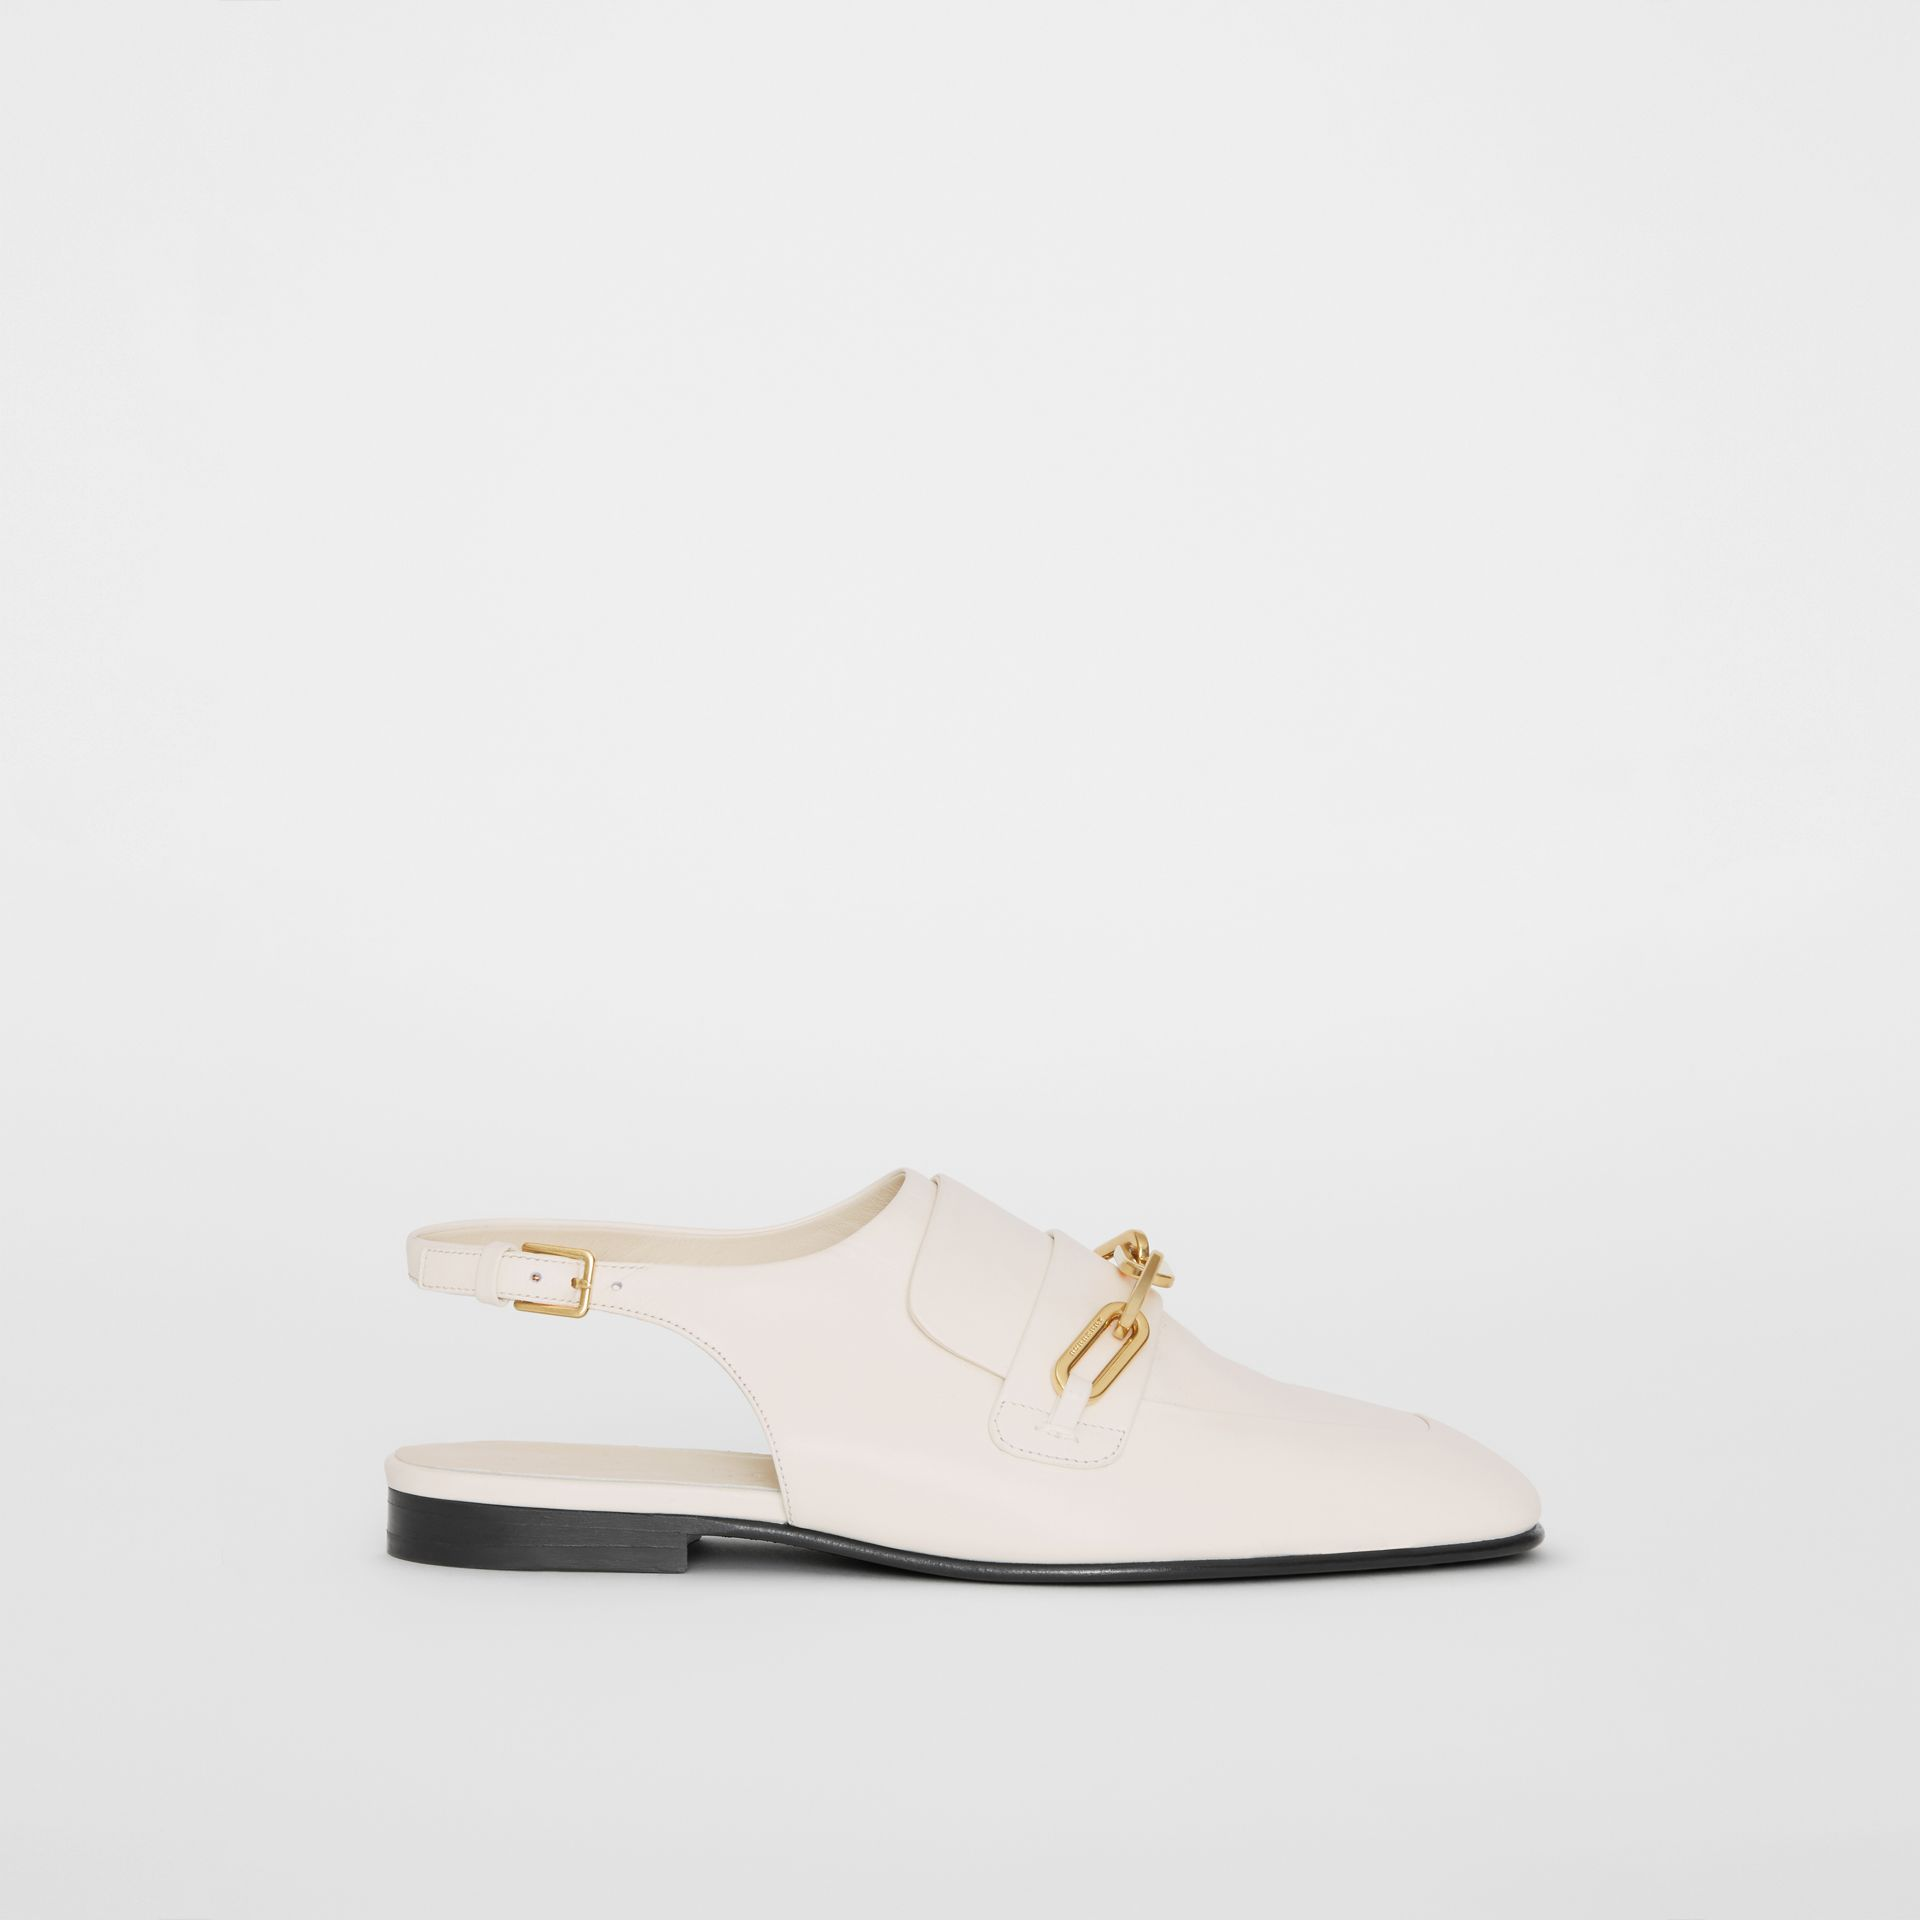 Link Detail Leather Slingback Loafers in Ash White - Women | Burberry United States - gallery image 4